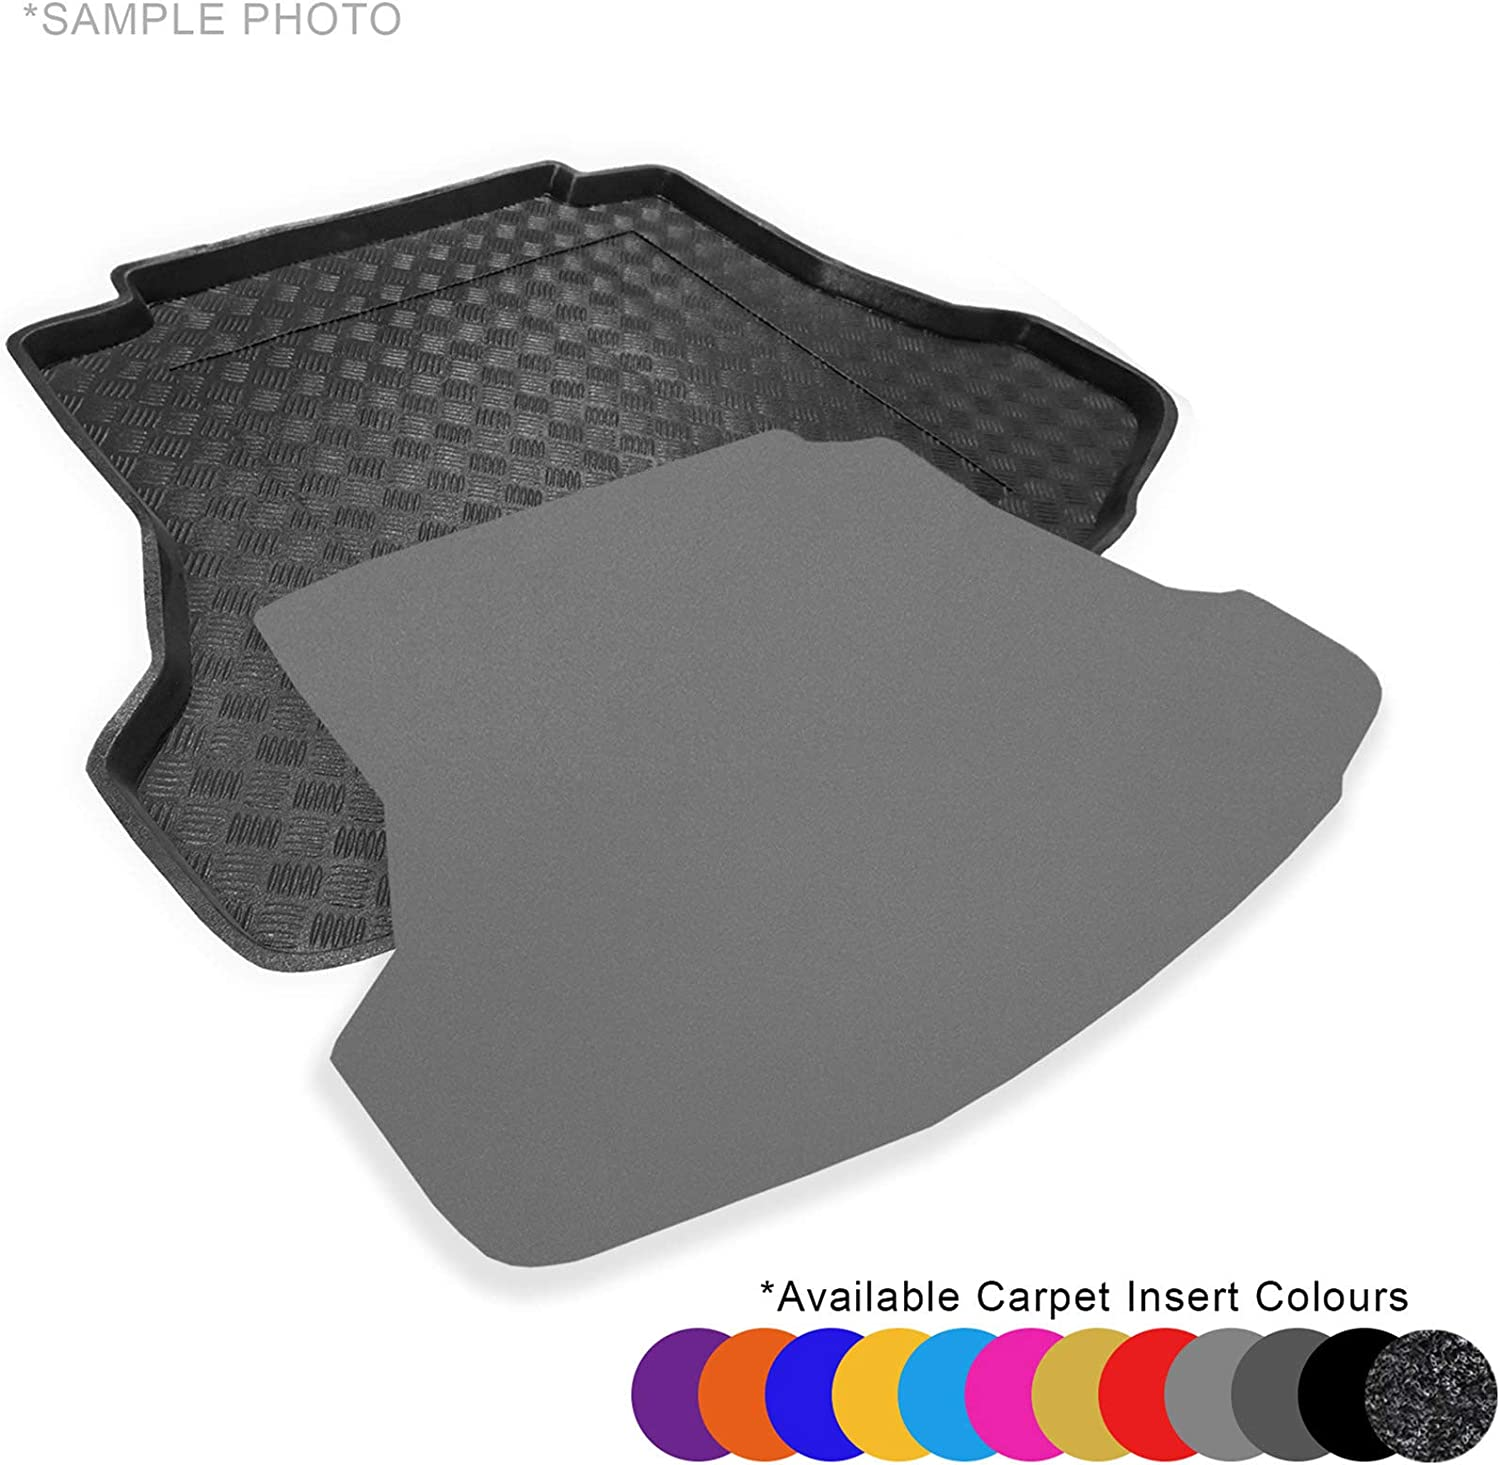 Fully Tailored PVC Boot Liner//Tray CARMATS4U.COM X-Trail III T32 Facelift 2017 FREE Anthracite Carpet Insert Upper Floor of the Boot